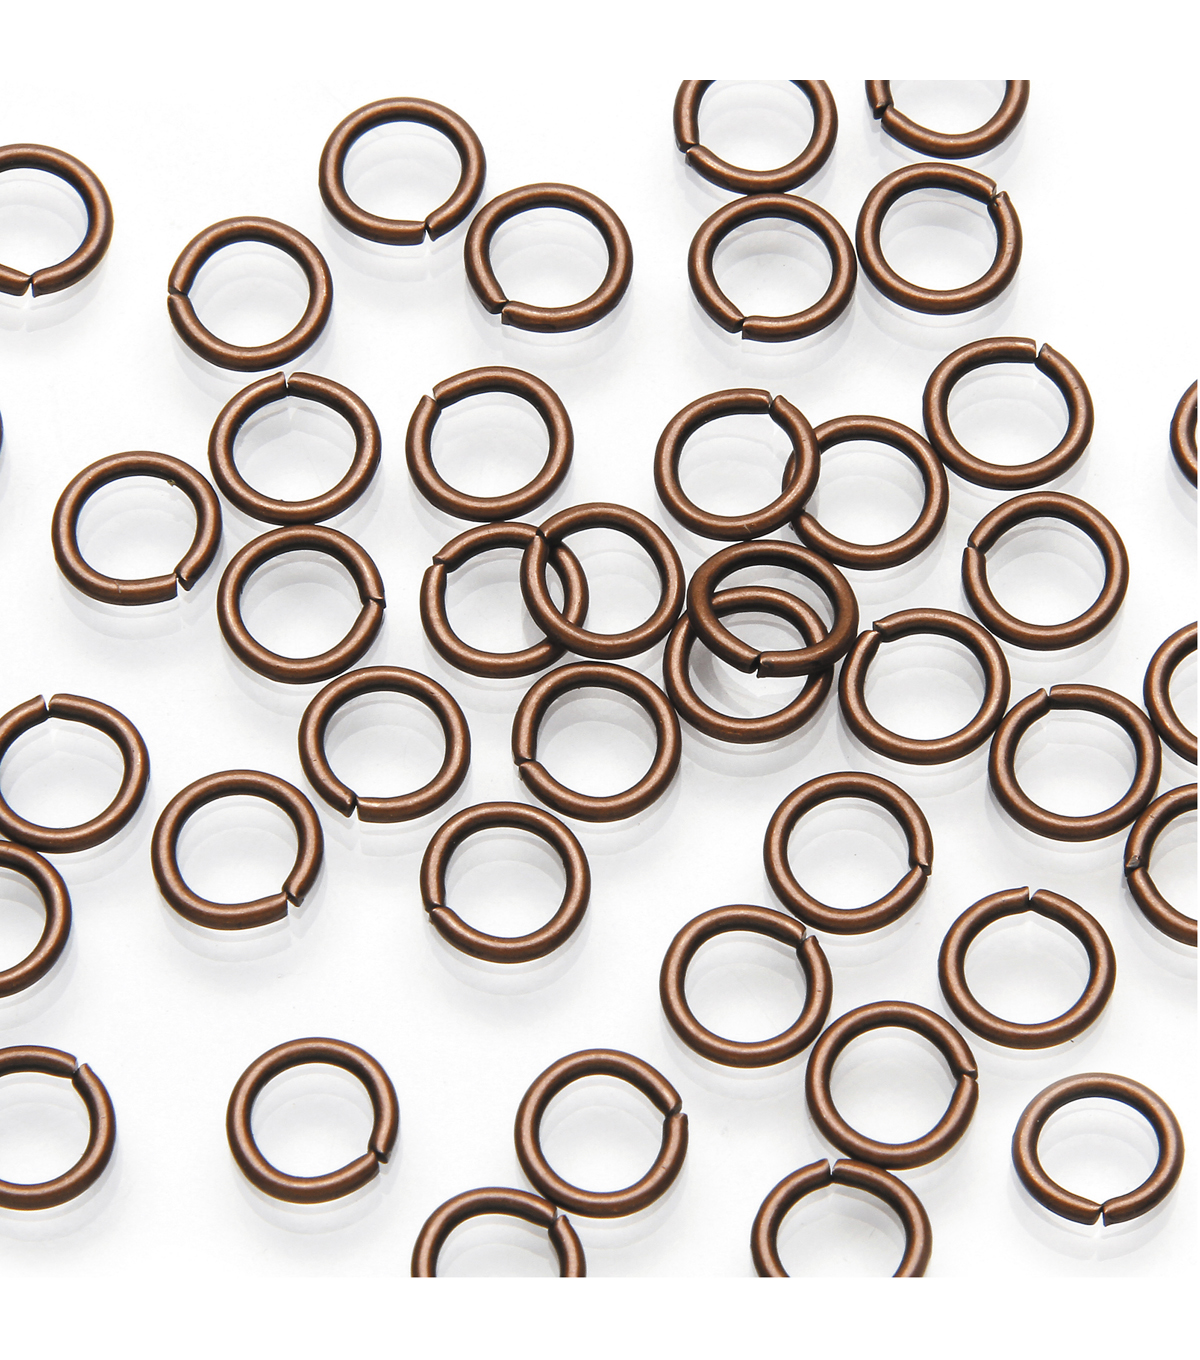 Jump Rings, 6mm Round - Antique Copper Finish